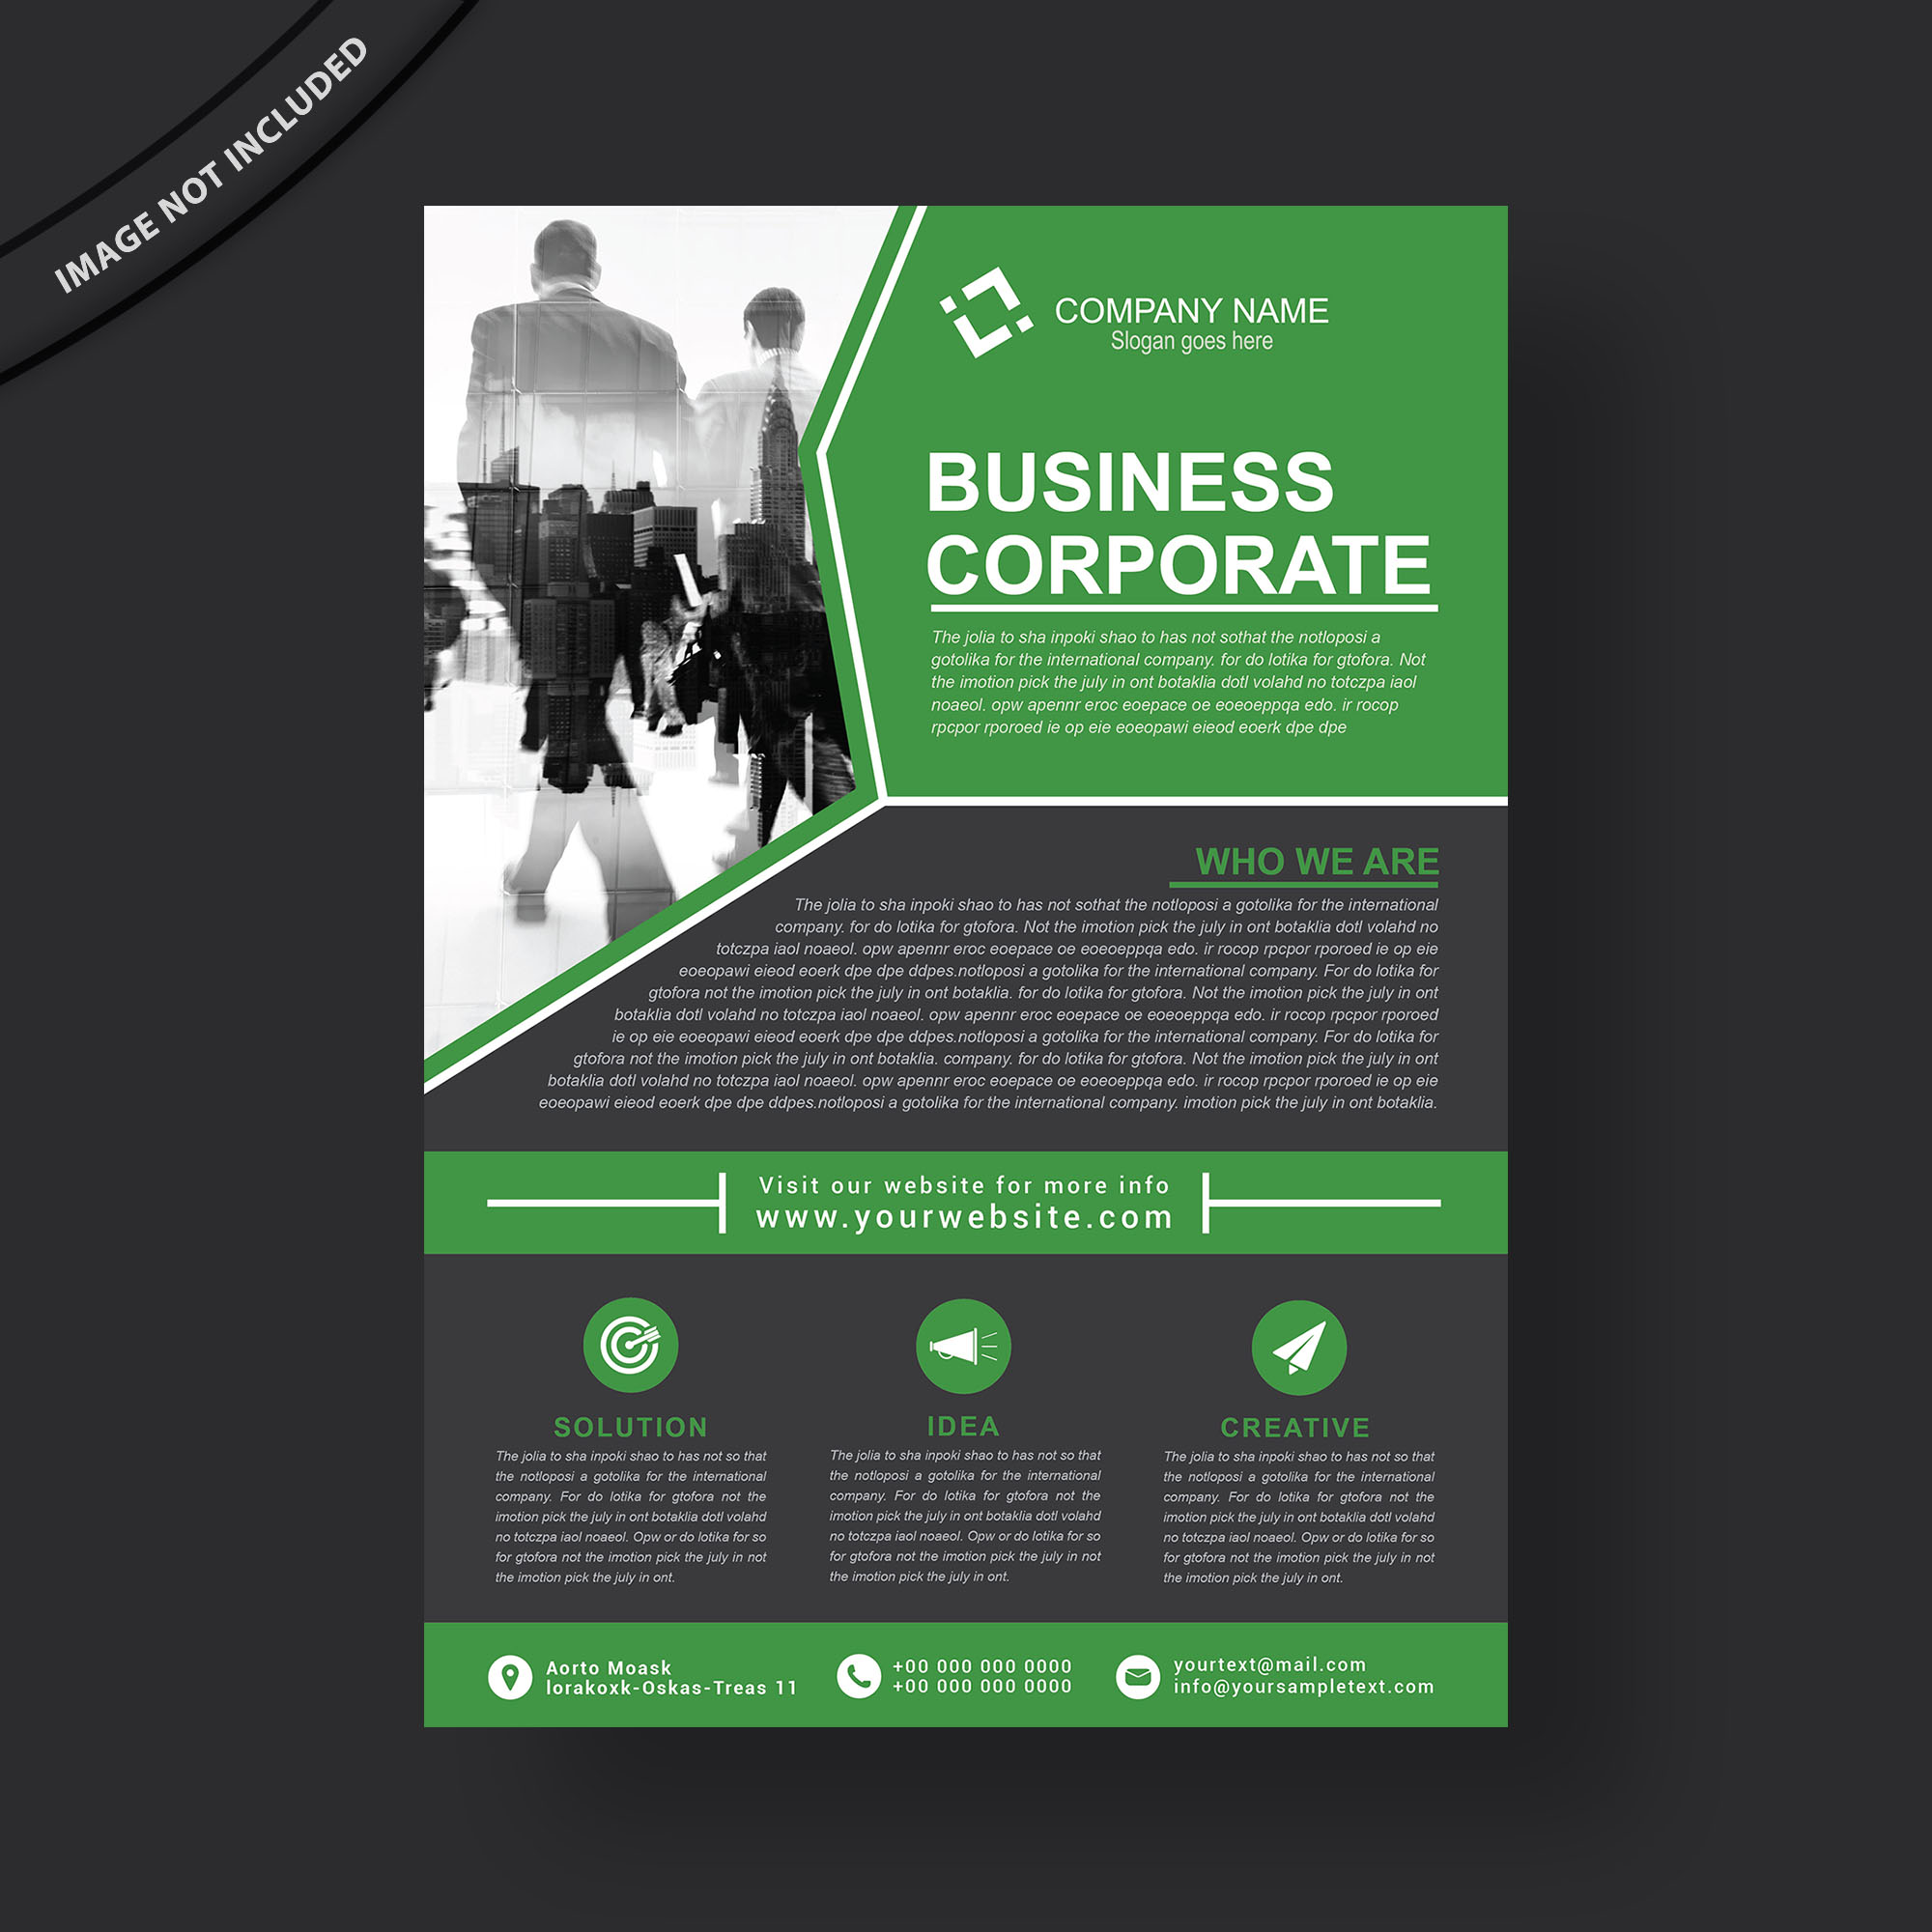 Multipurpose Business Flyer Template Free Download - Wisxi.com